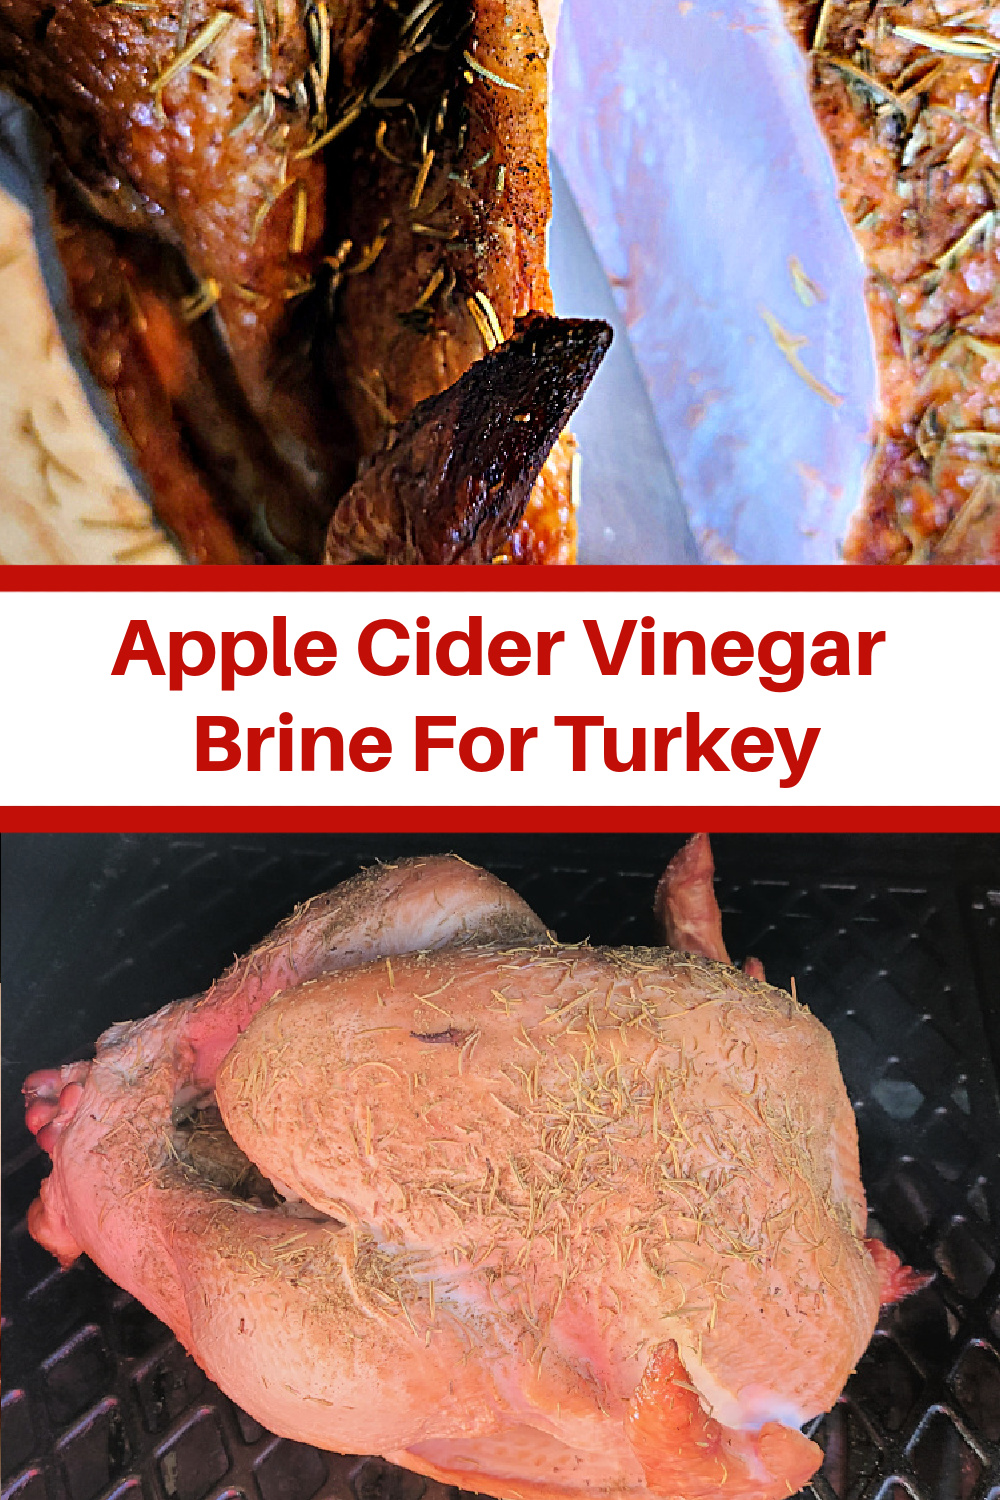 This Apple Cider Vinegar Brine For Turkey is perfect for smoking a turkey! The brine adds so much flavor and also keeps the turkey moist! You can also use this brine to make a turkey in the oven as well! Perfect to smoke on a pellet grill or an electric smoker!